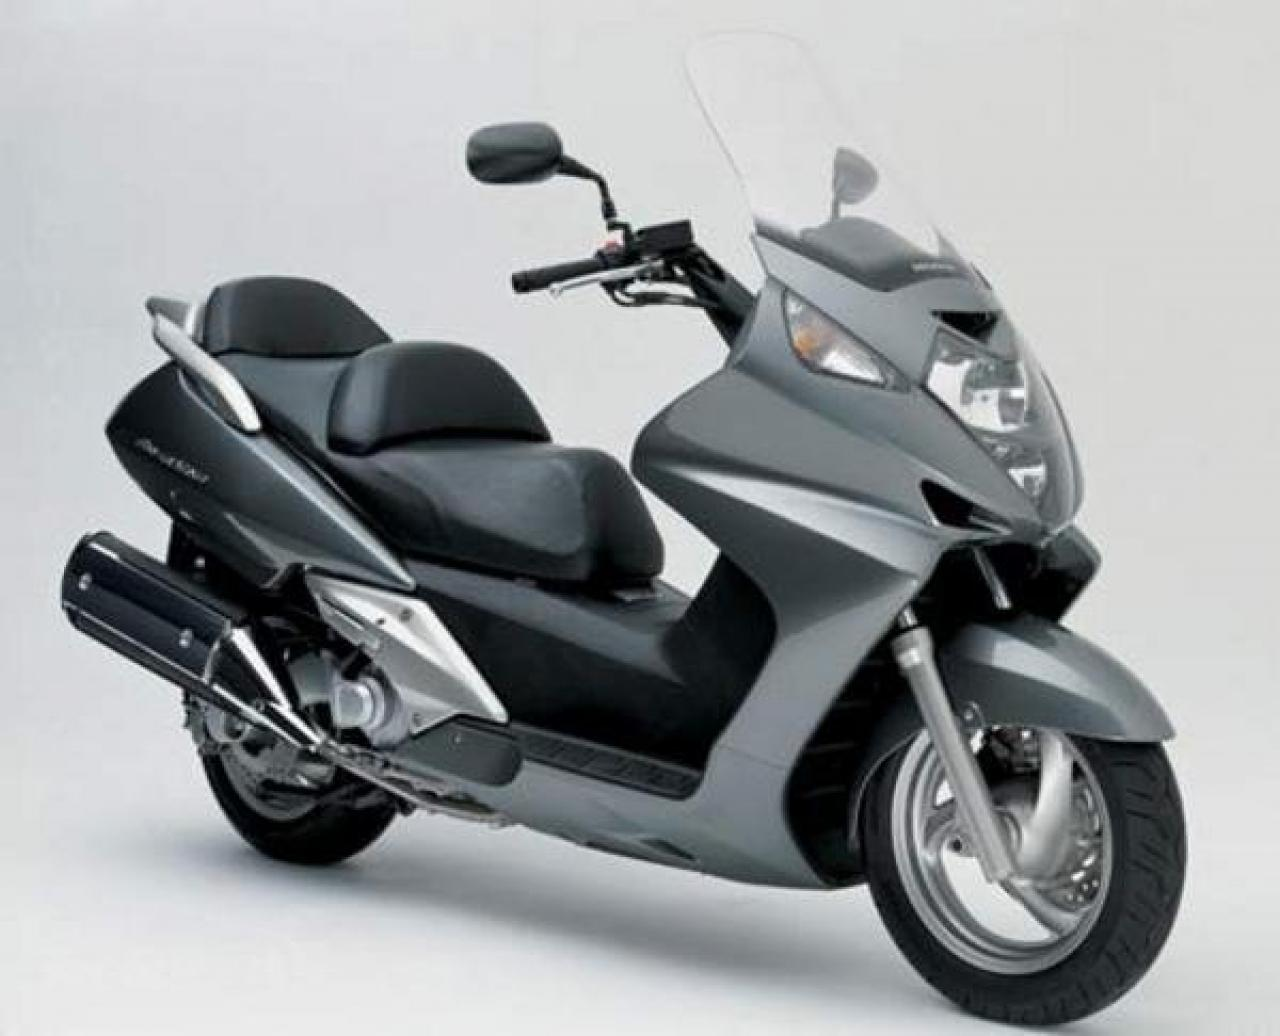 Honda Silver Wing 2007 images #83019